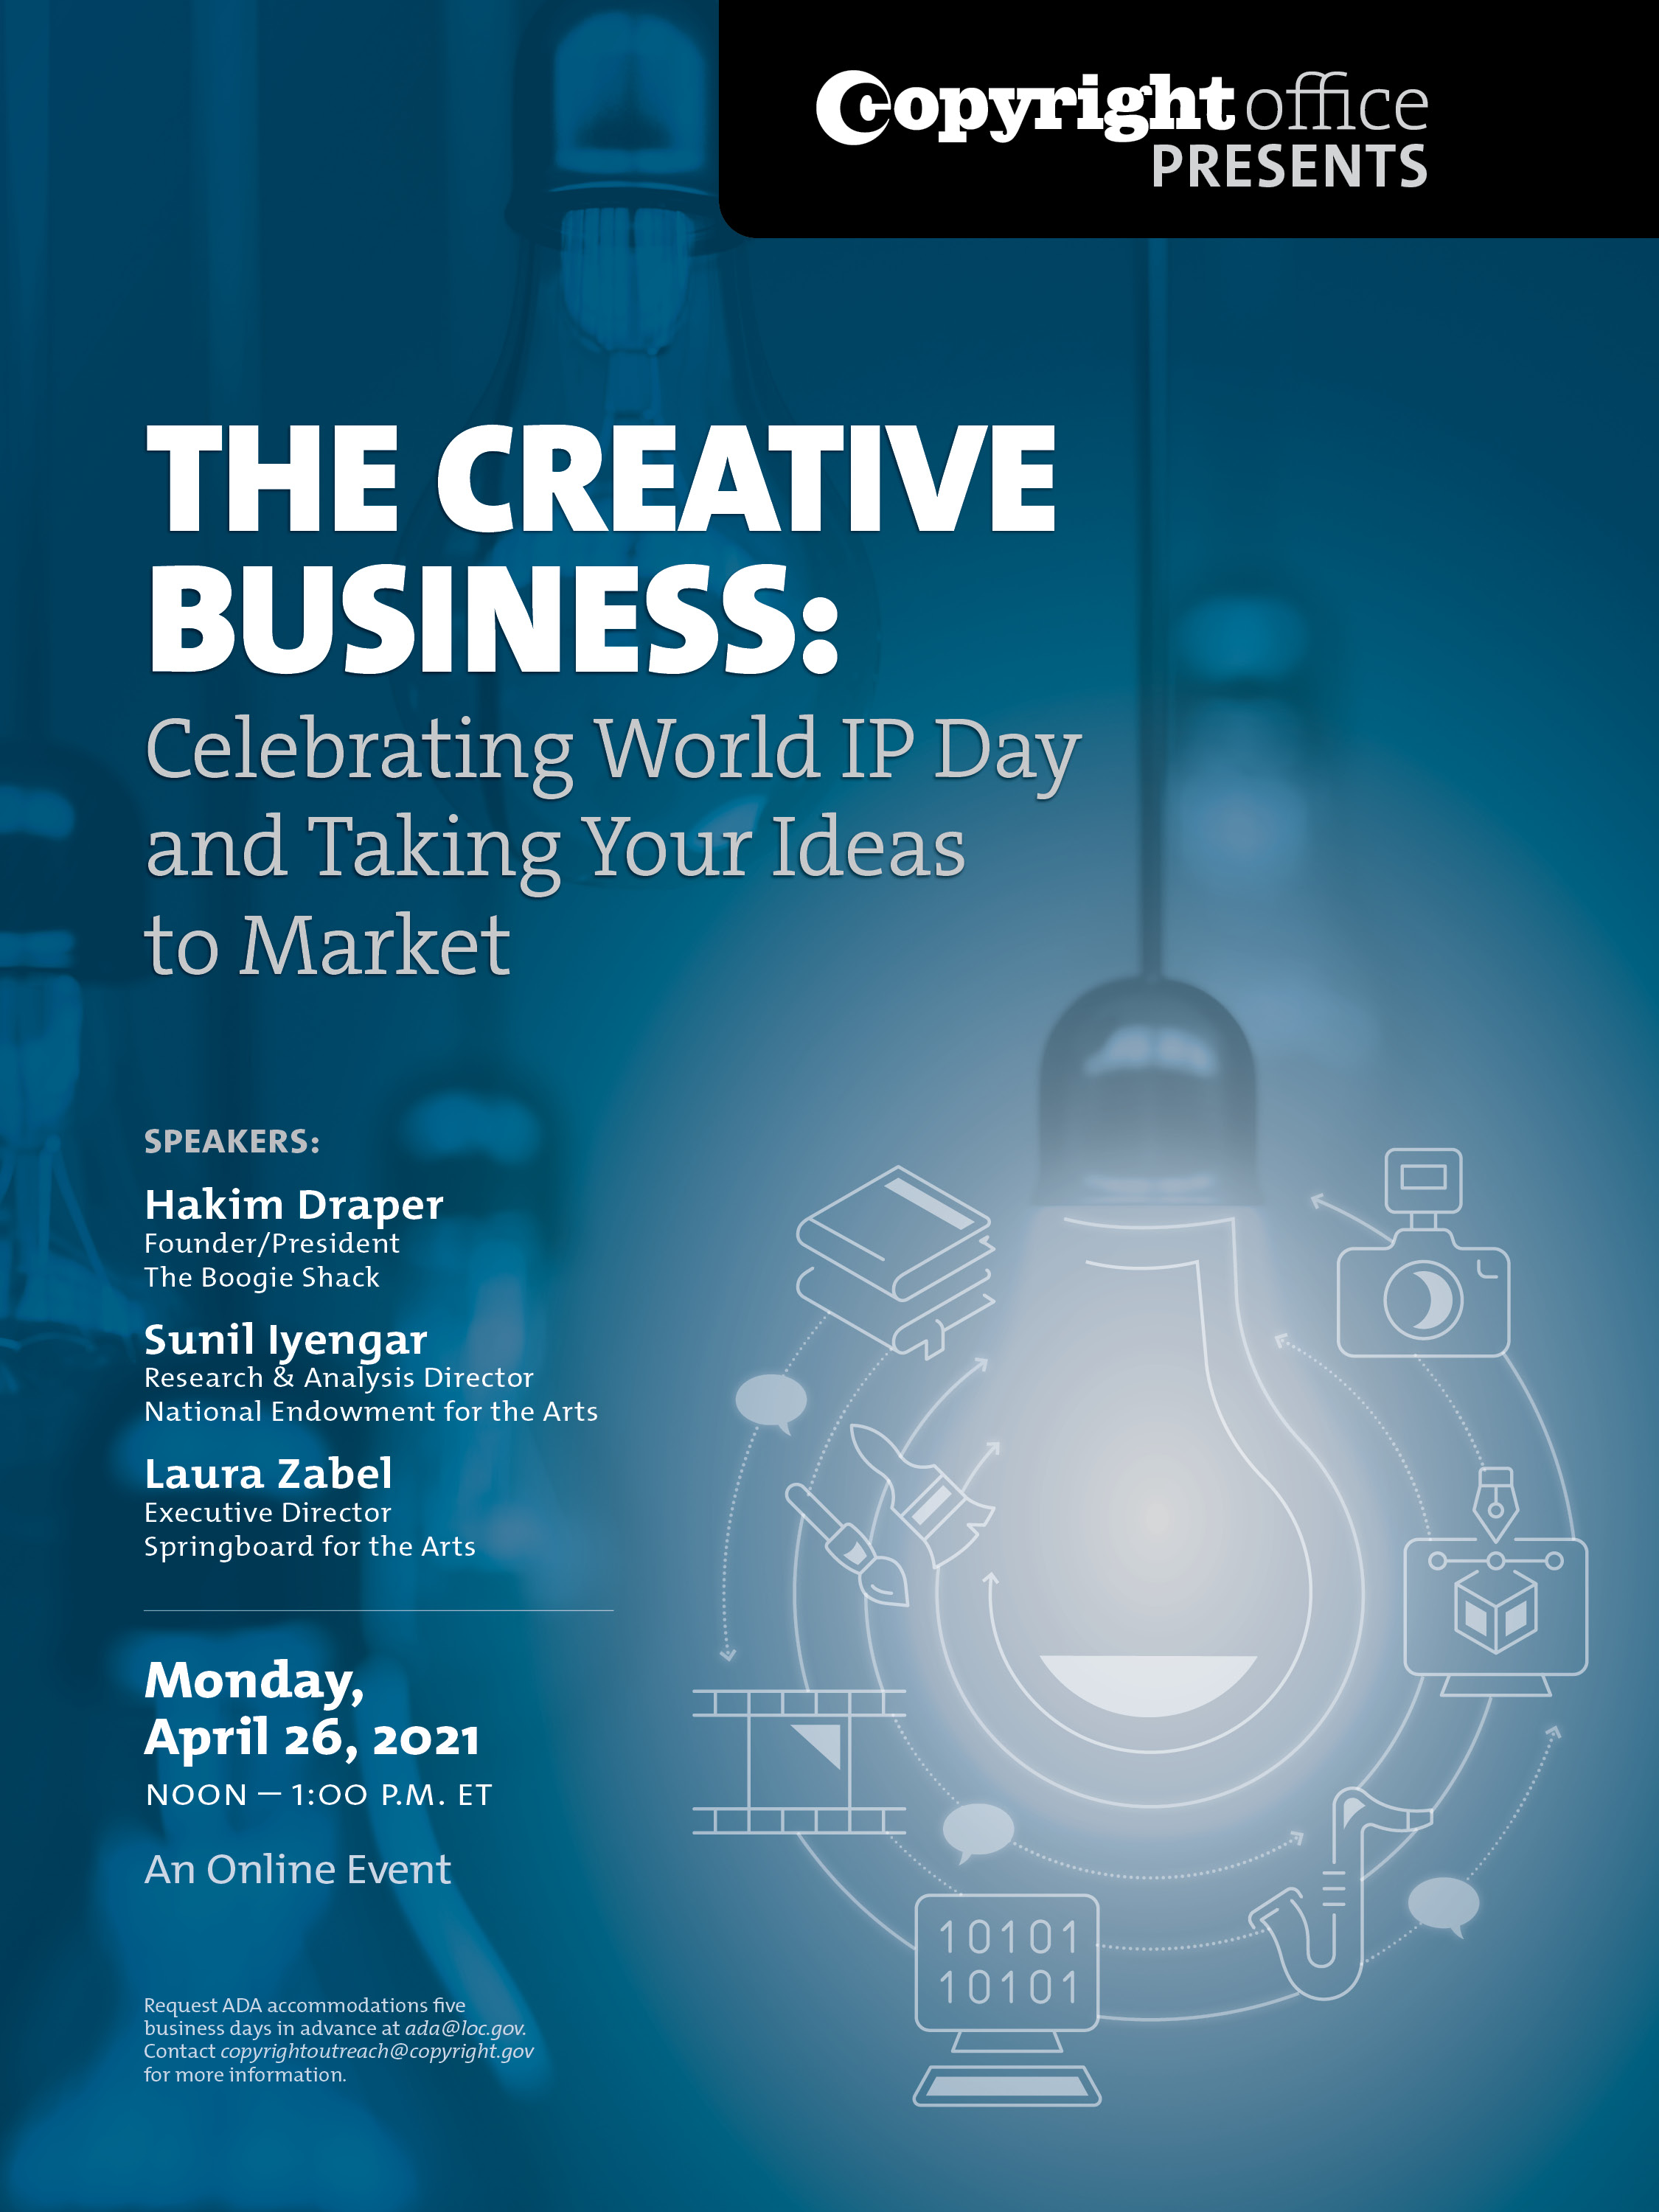 The Creative Business: Celebrating World IP Day and Taking Your Ideas to Market